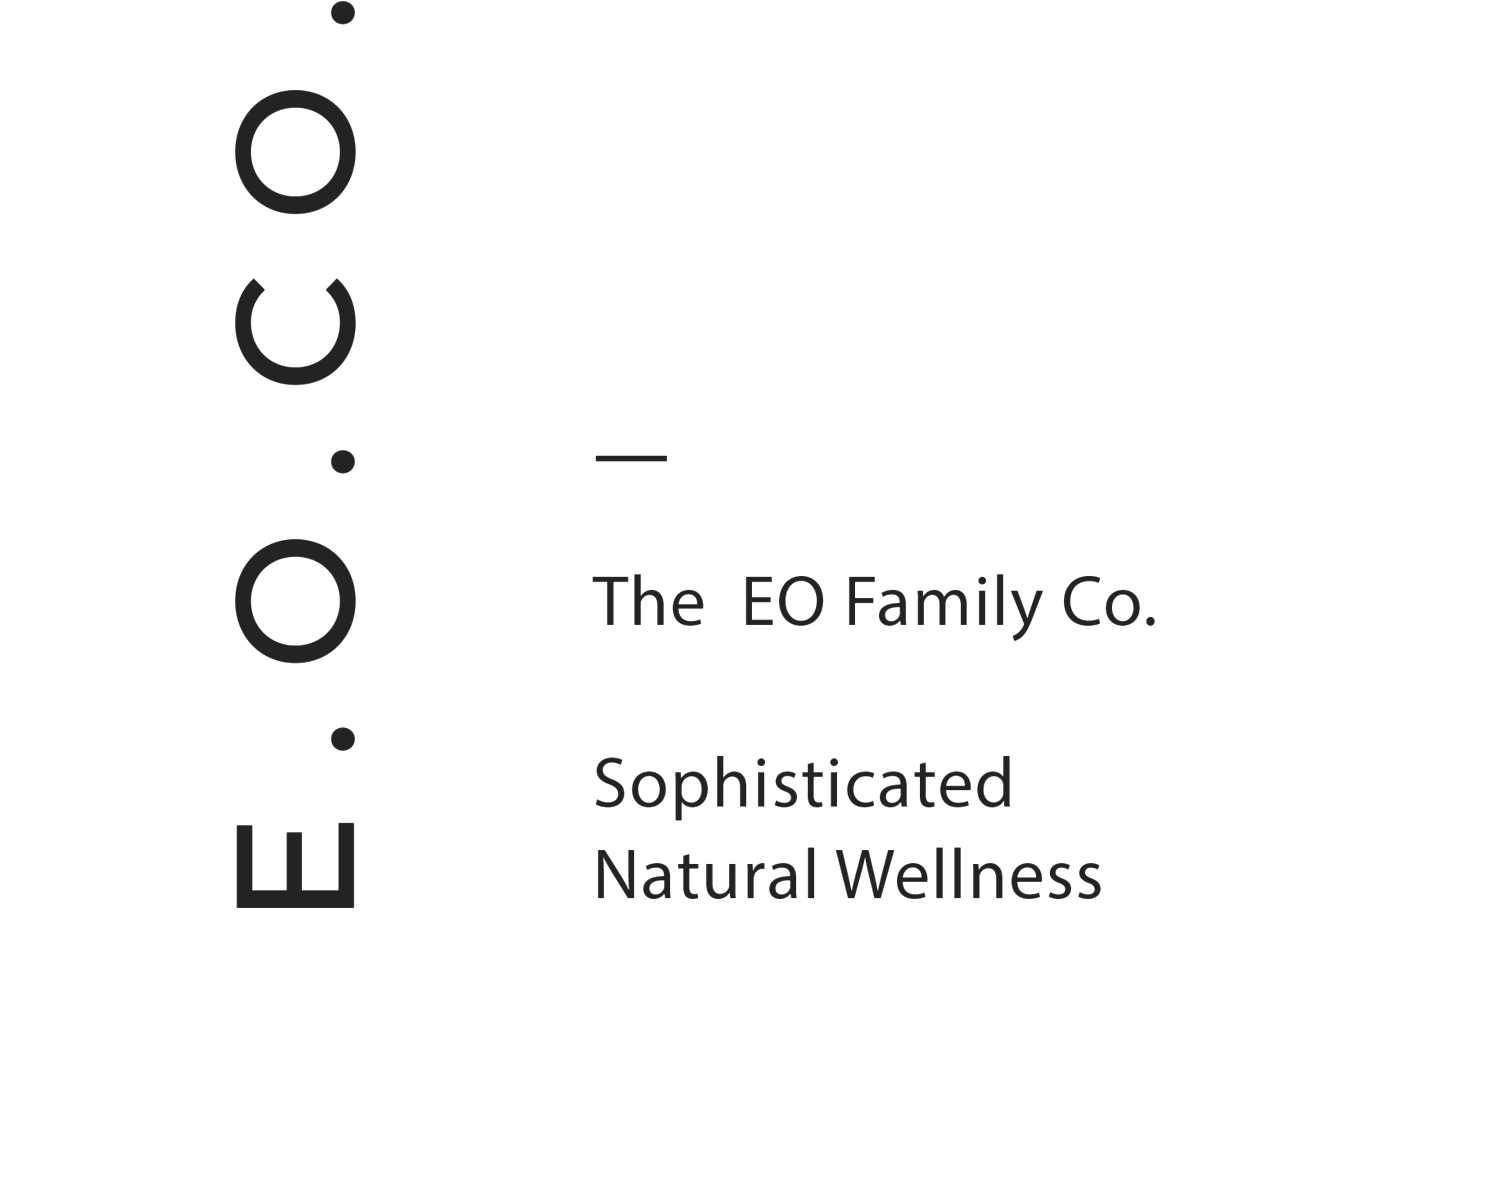 THE EO FAMILY CO.